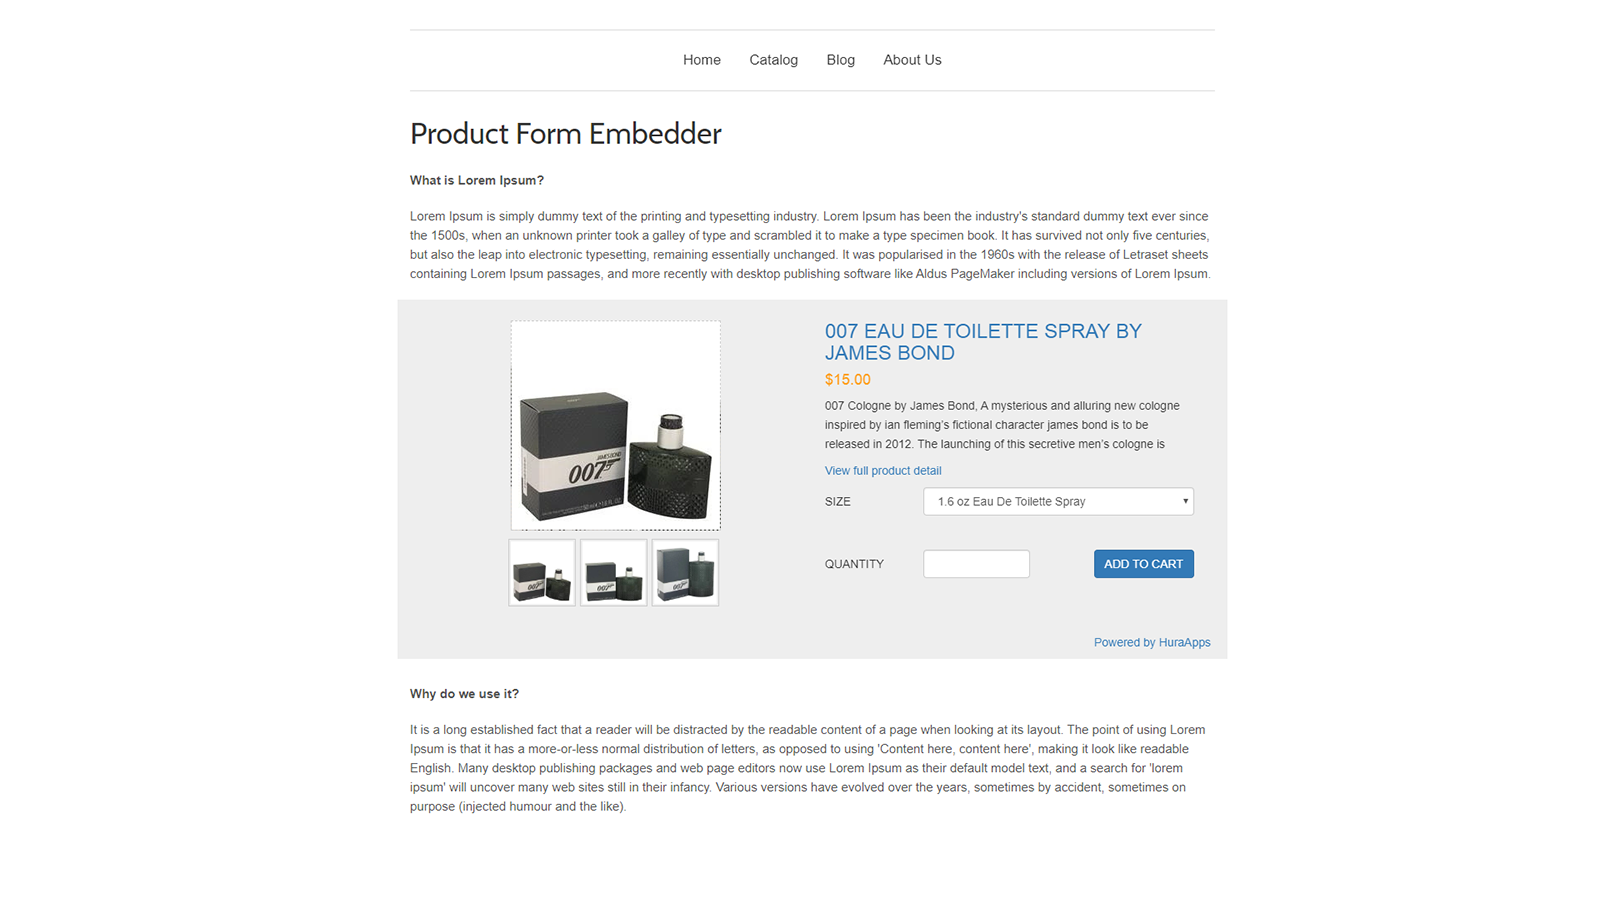 Product Form with Gallery Image